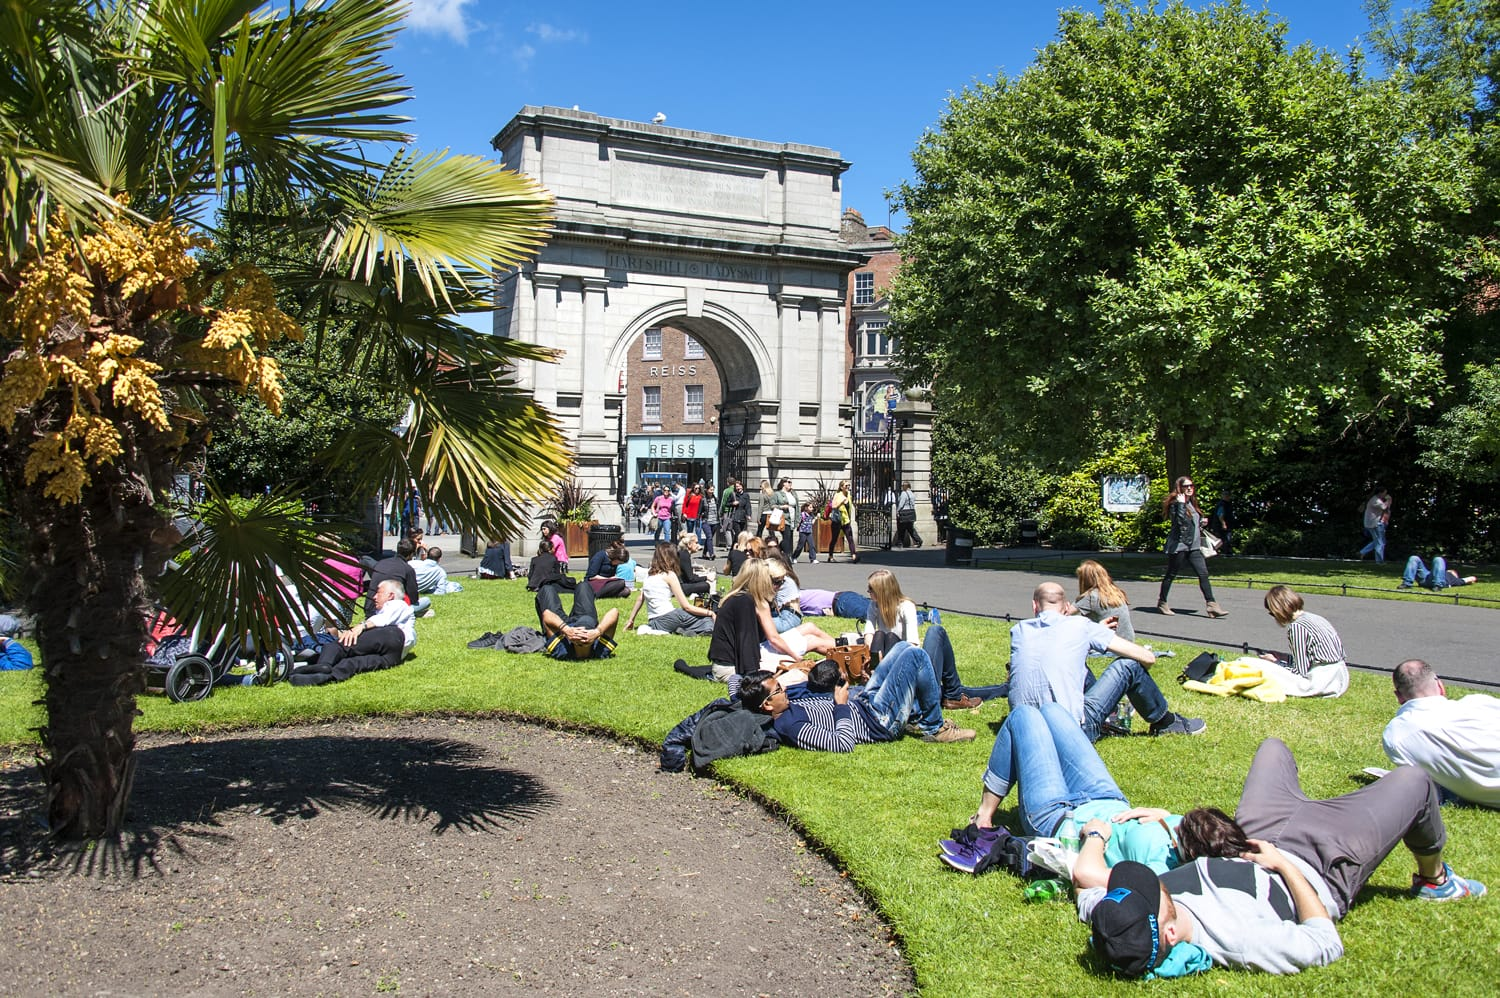 St. Stephen's Green next to Fusilier's Arch in Dublin, Ireland